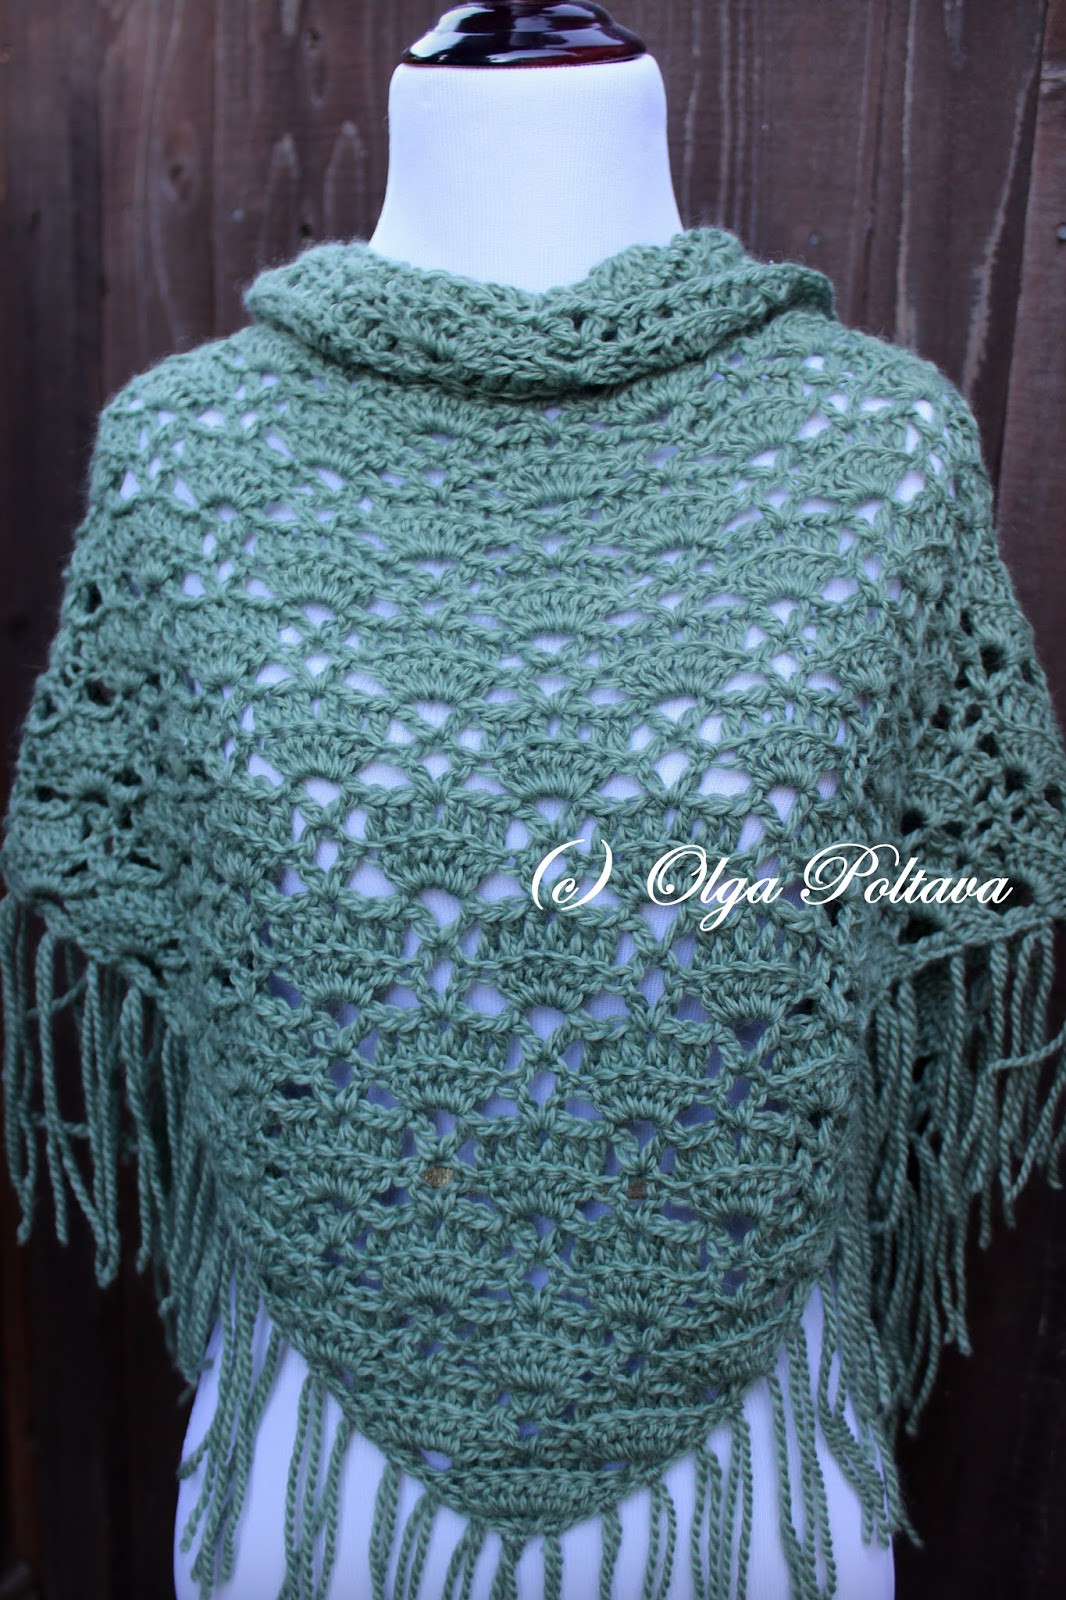 Scarf Crochet Fresh Lacy Crochet Baby Alpaca Wool Autumn Scarf Of Innovative 47 Pictures Scarf Crochet